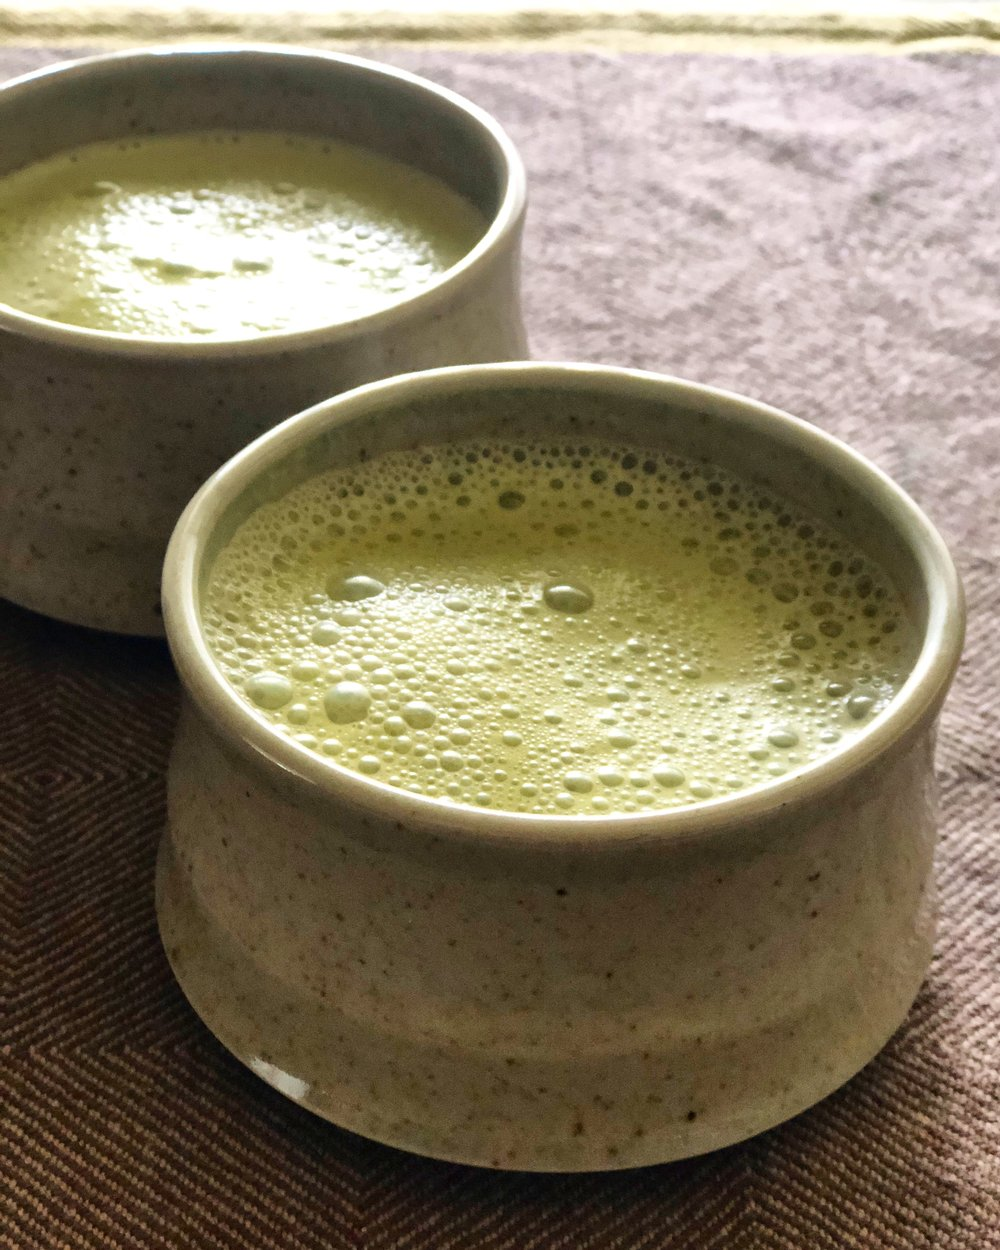 Enjoying some Matcha Tea Lattes in my dad's ceramic mugs... :)